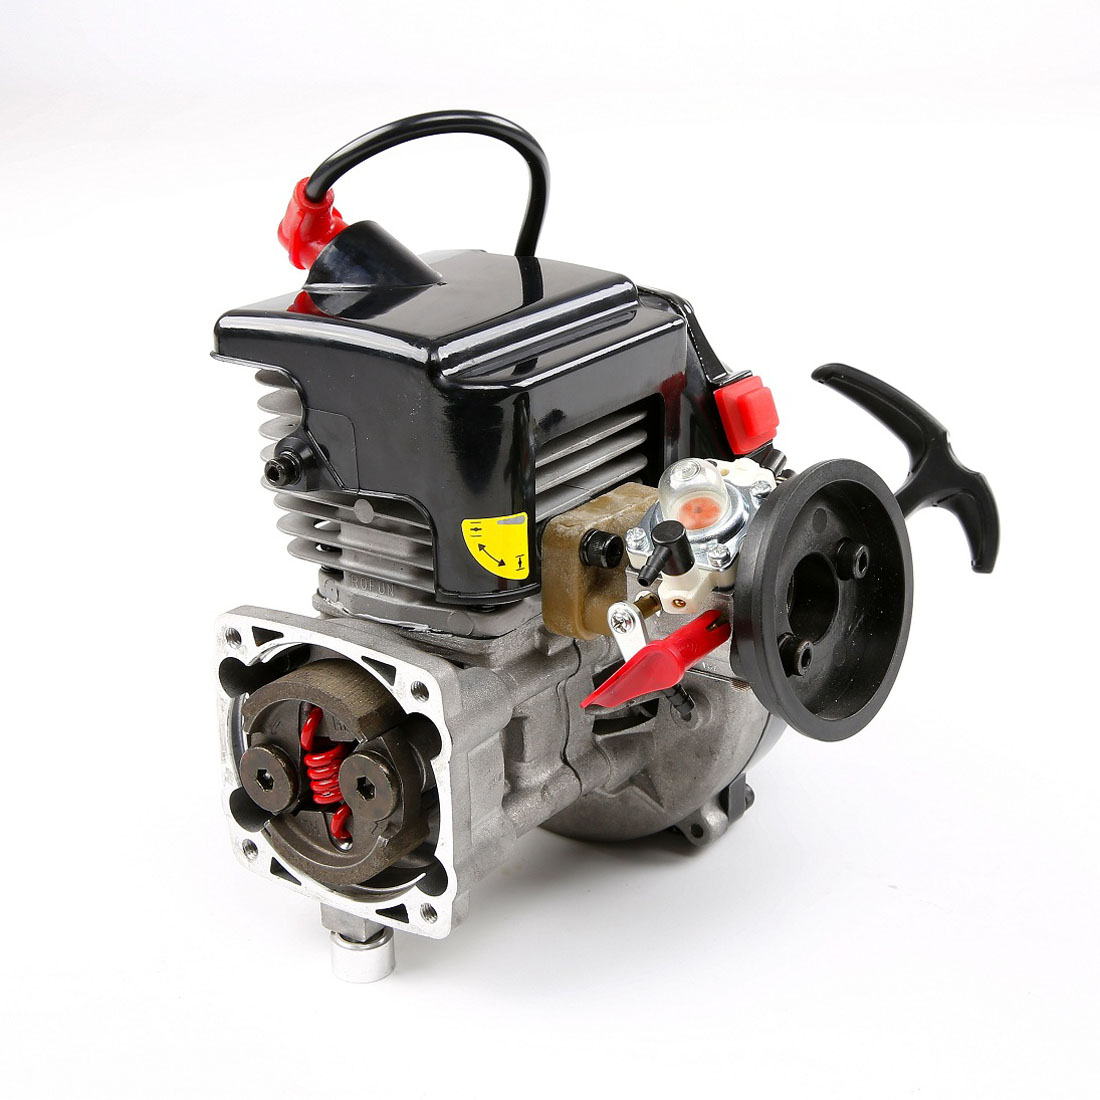 45cc Single-Cylinder Two-Stroke 4.35 Hp Four-Point Fixed Easily Starting Engine Ffor 1/5 Rovan HPI KM BAJA RC Car